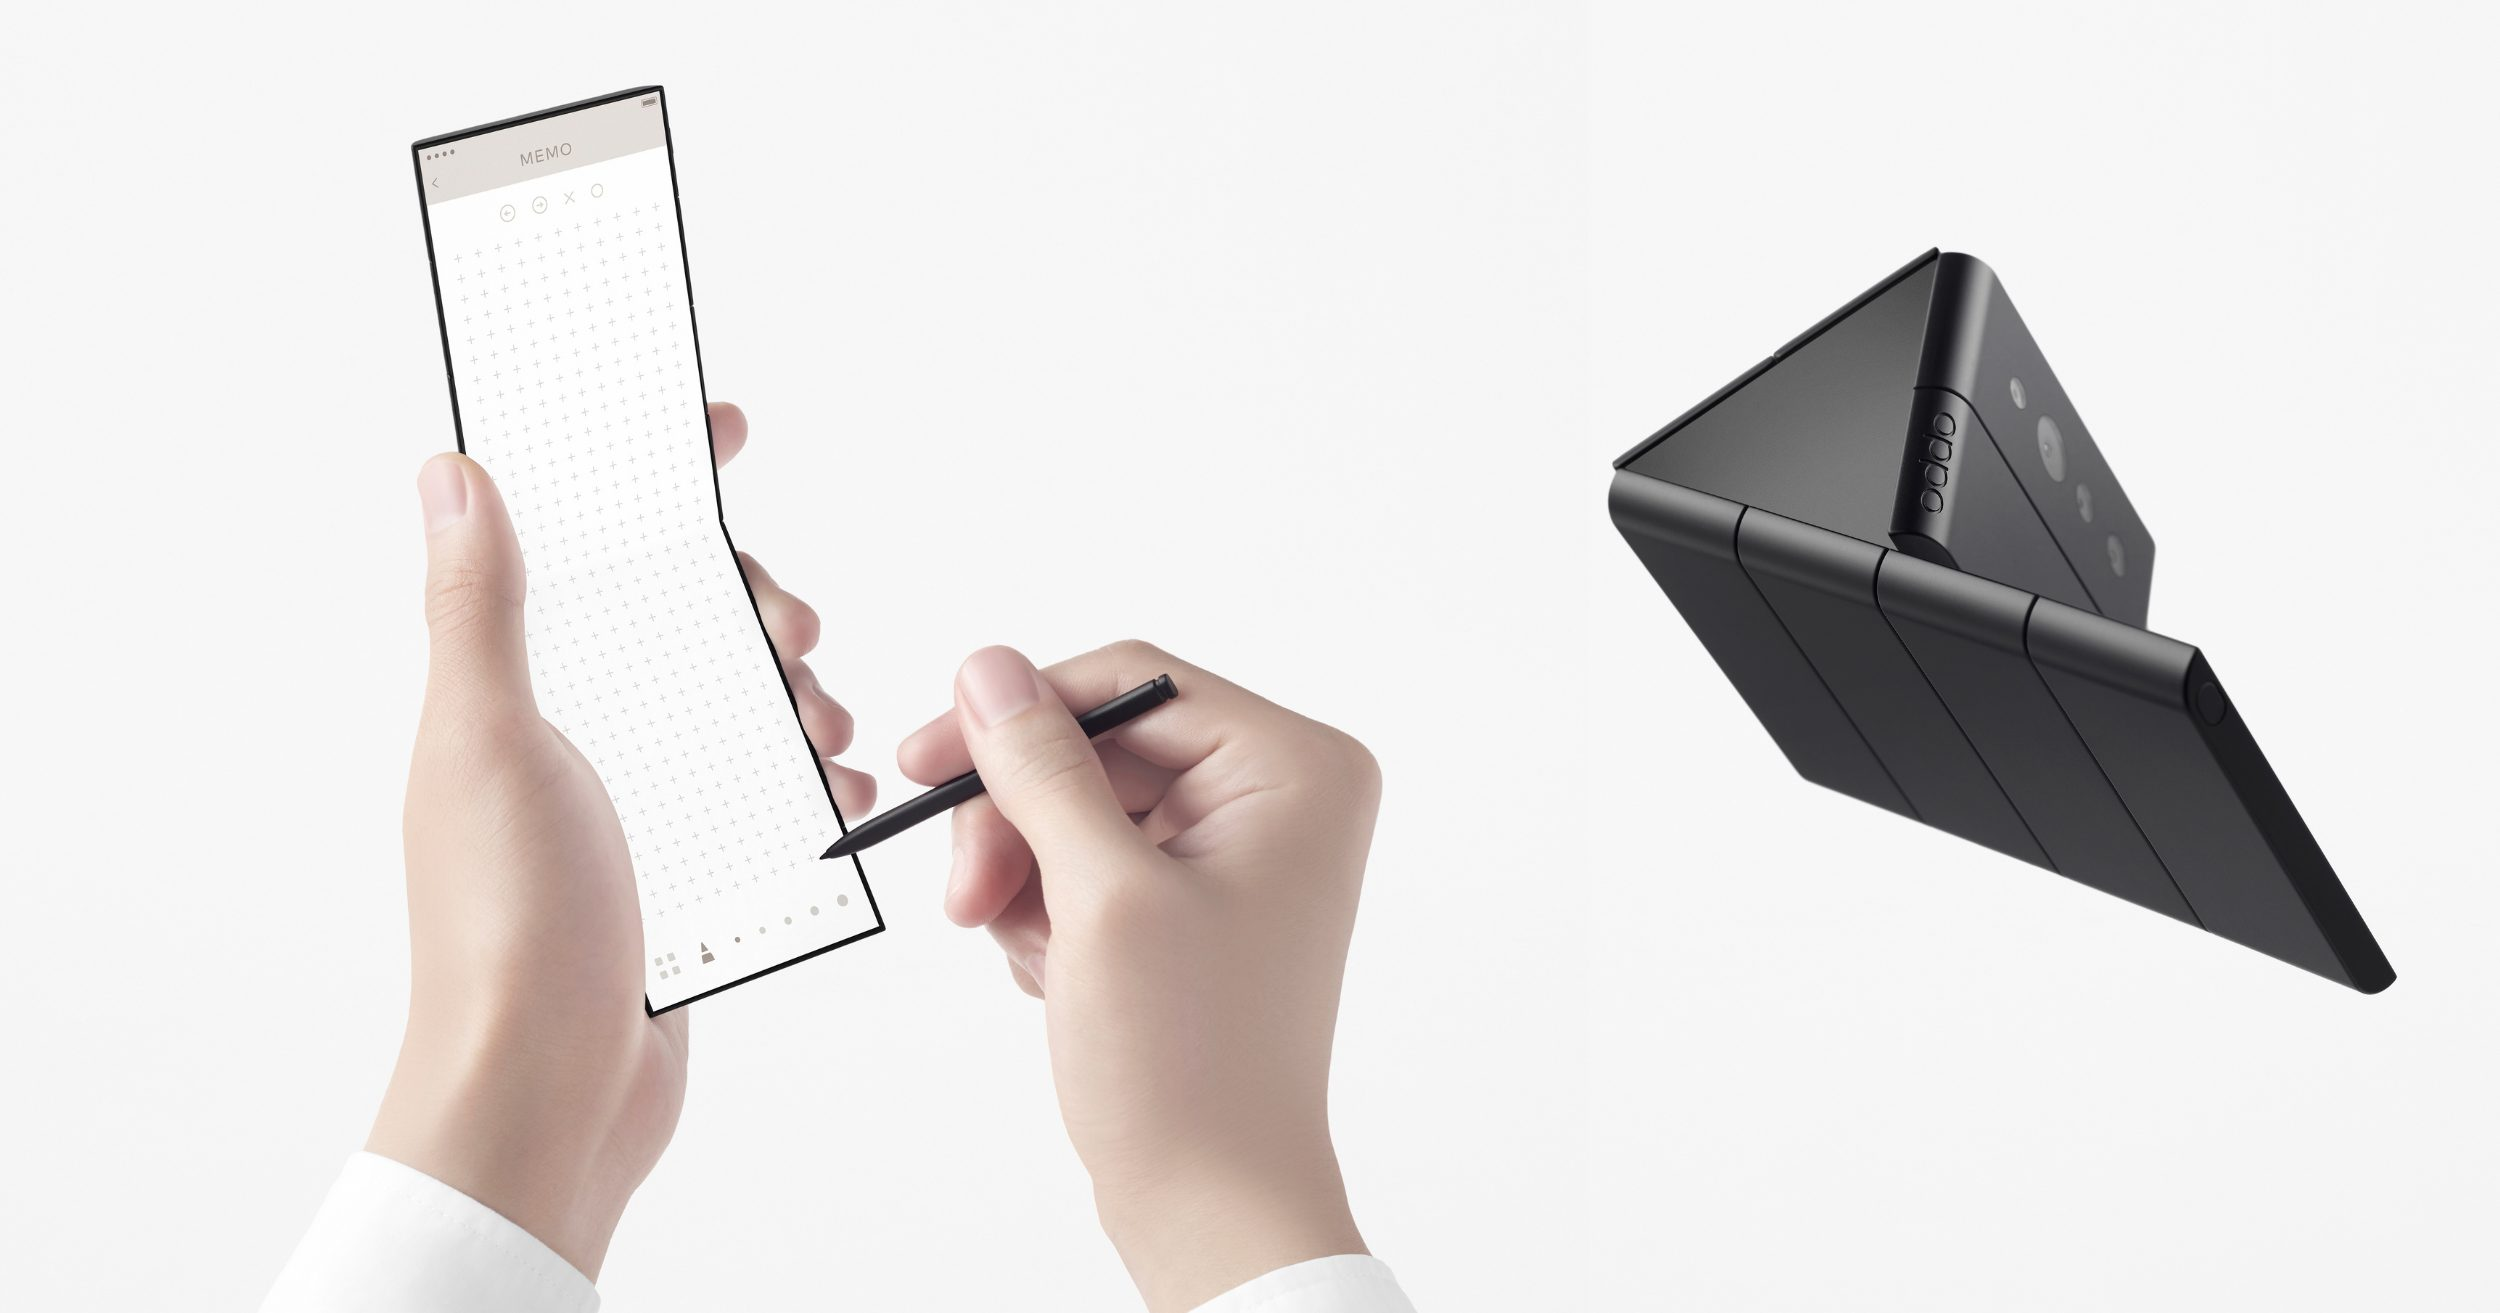 oppo-and-nendo-introduces-a-triple-screen-phone-that-goes-small-and-big